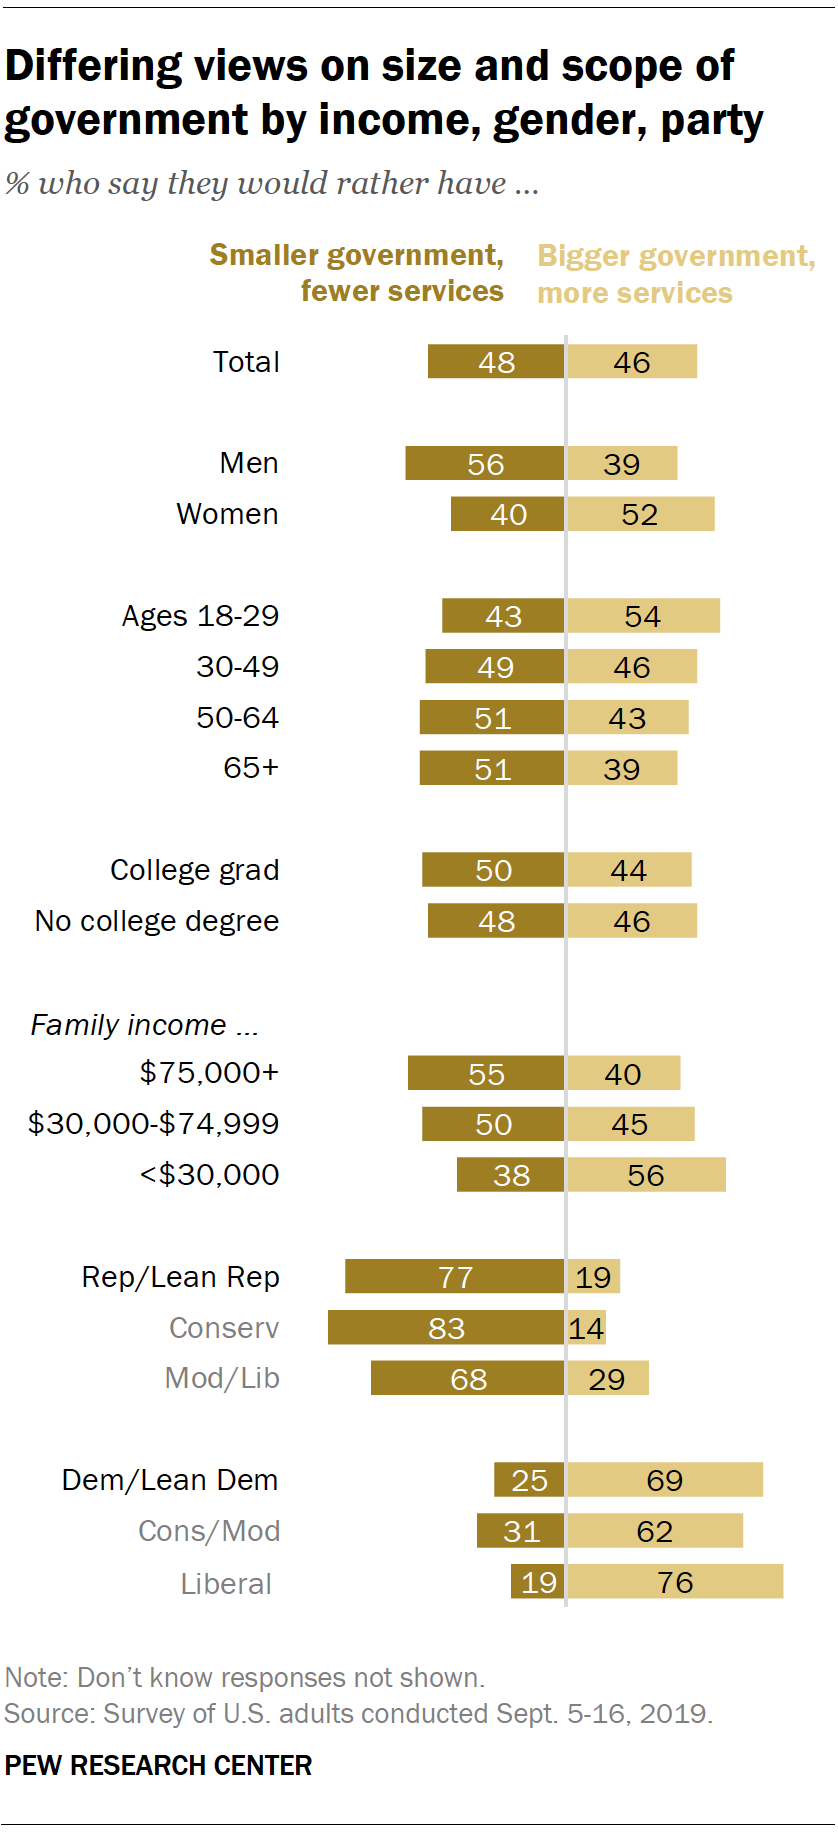 Differing views on size and scope of government by income, gender, party